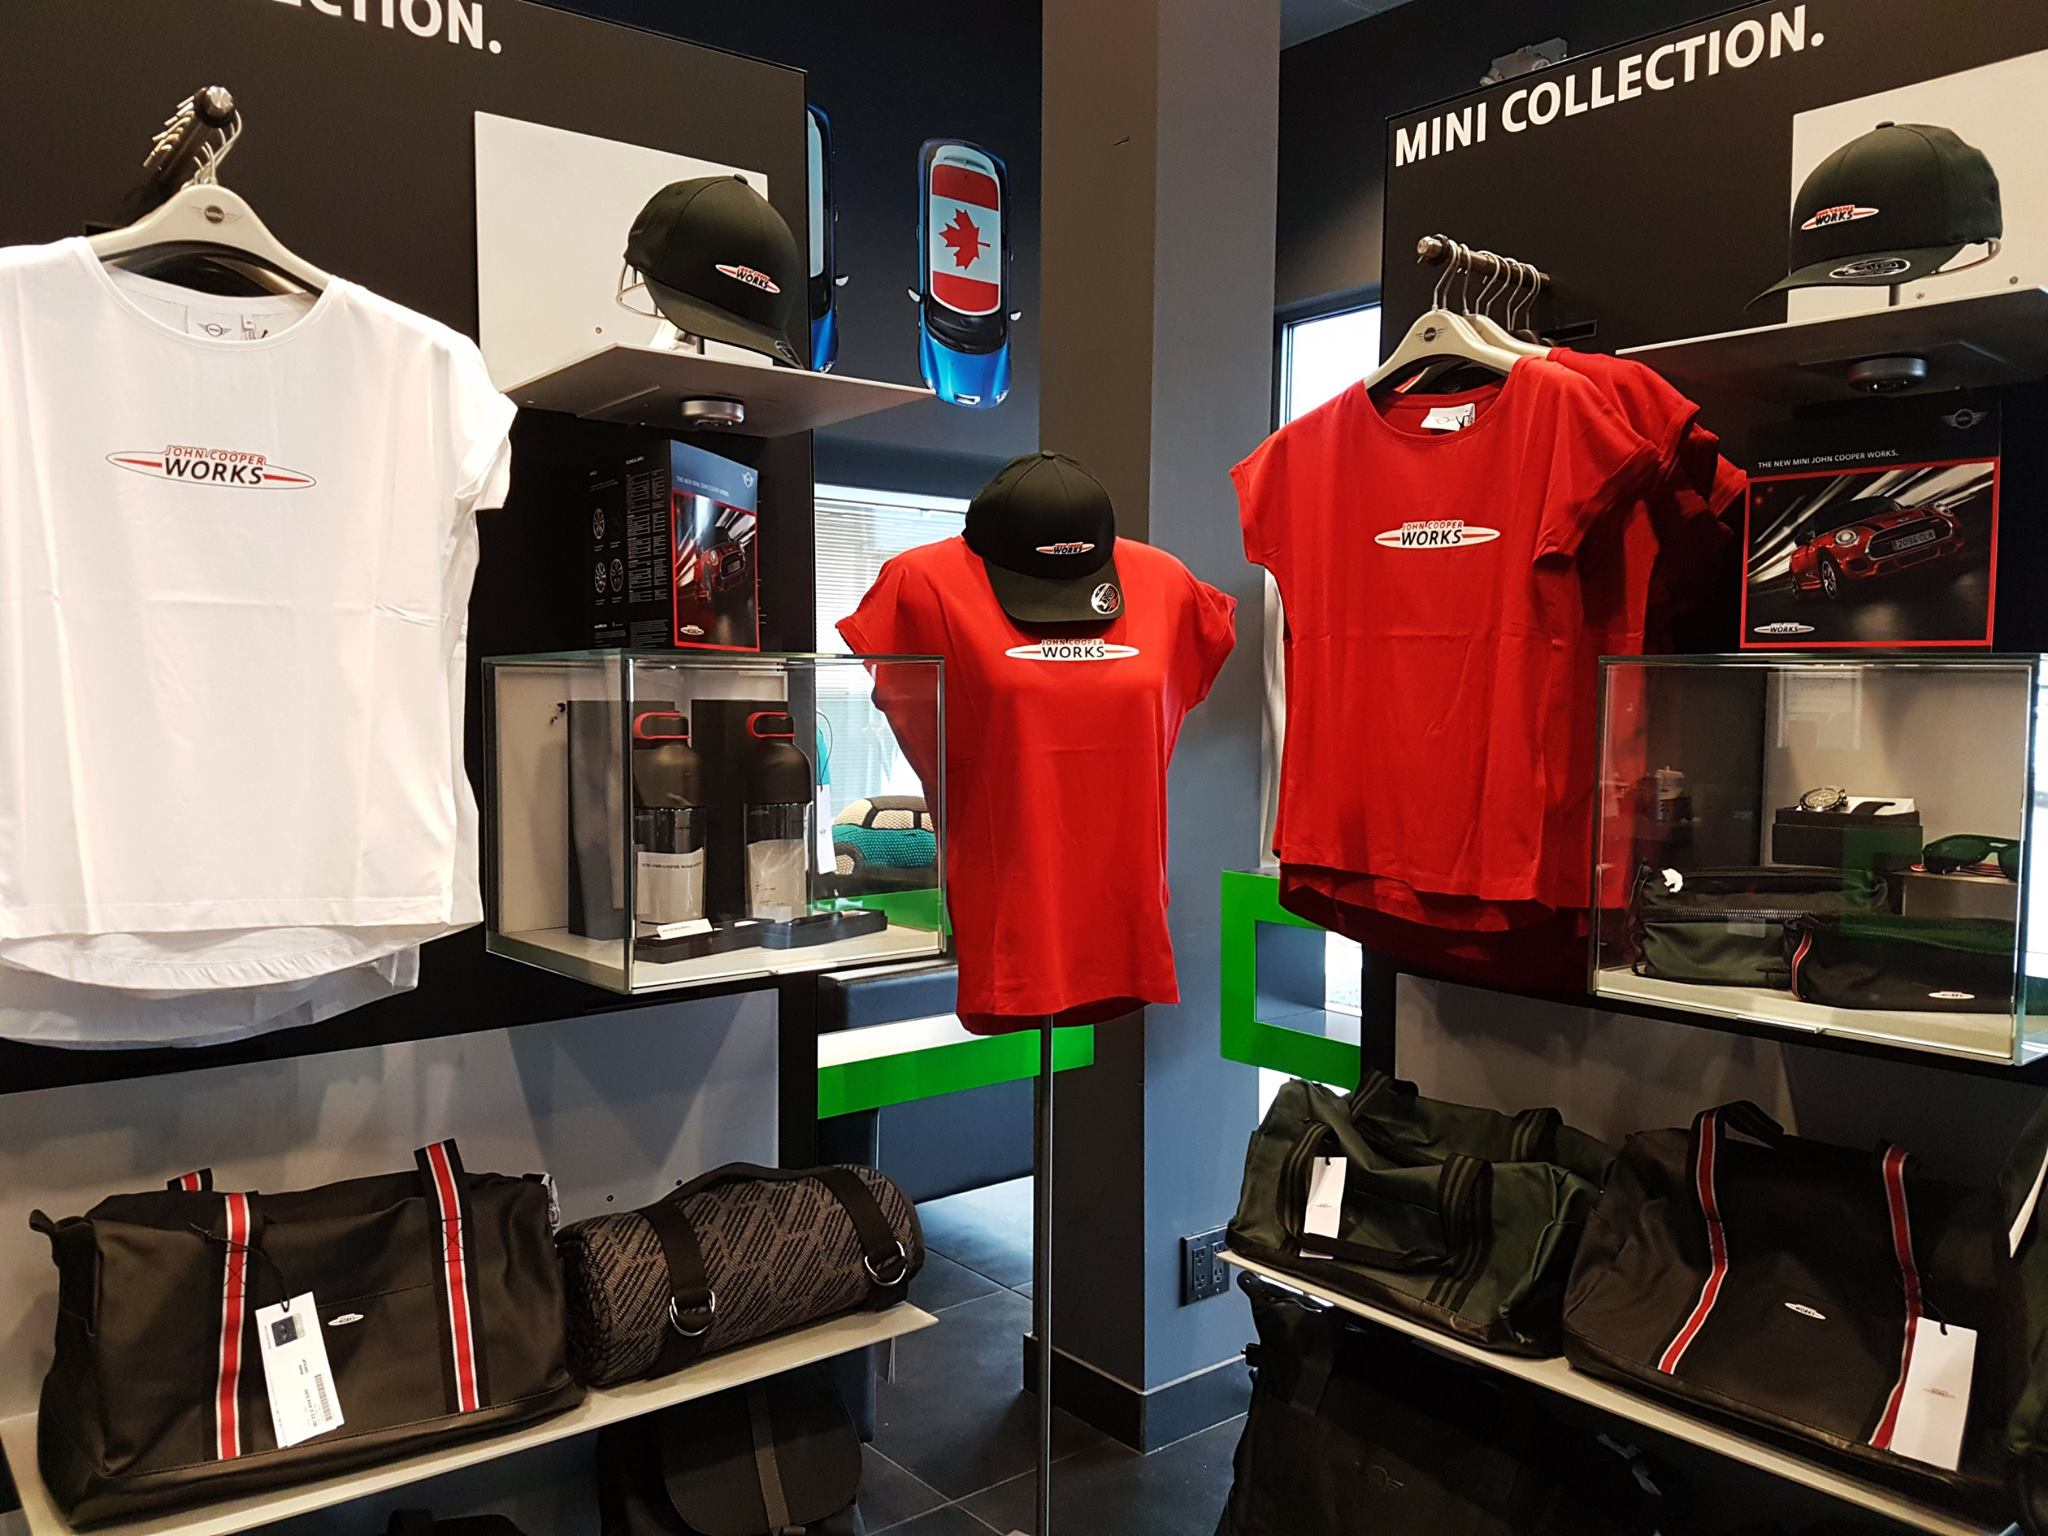 Mini-yaletown-jcw-lifestyle-collection